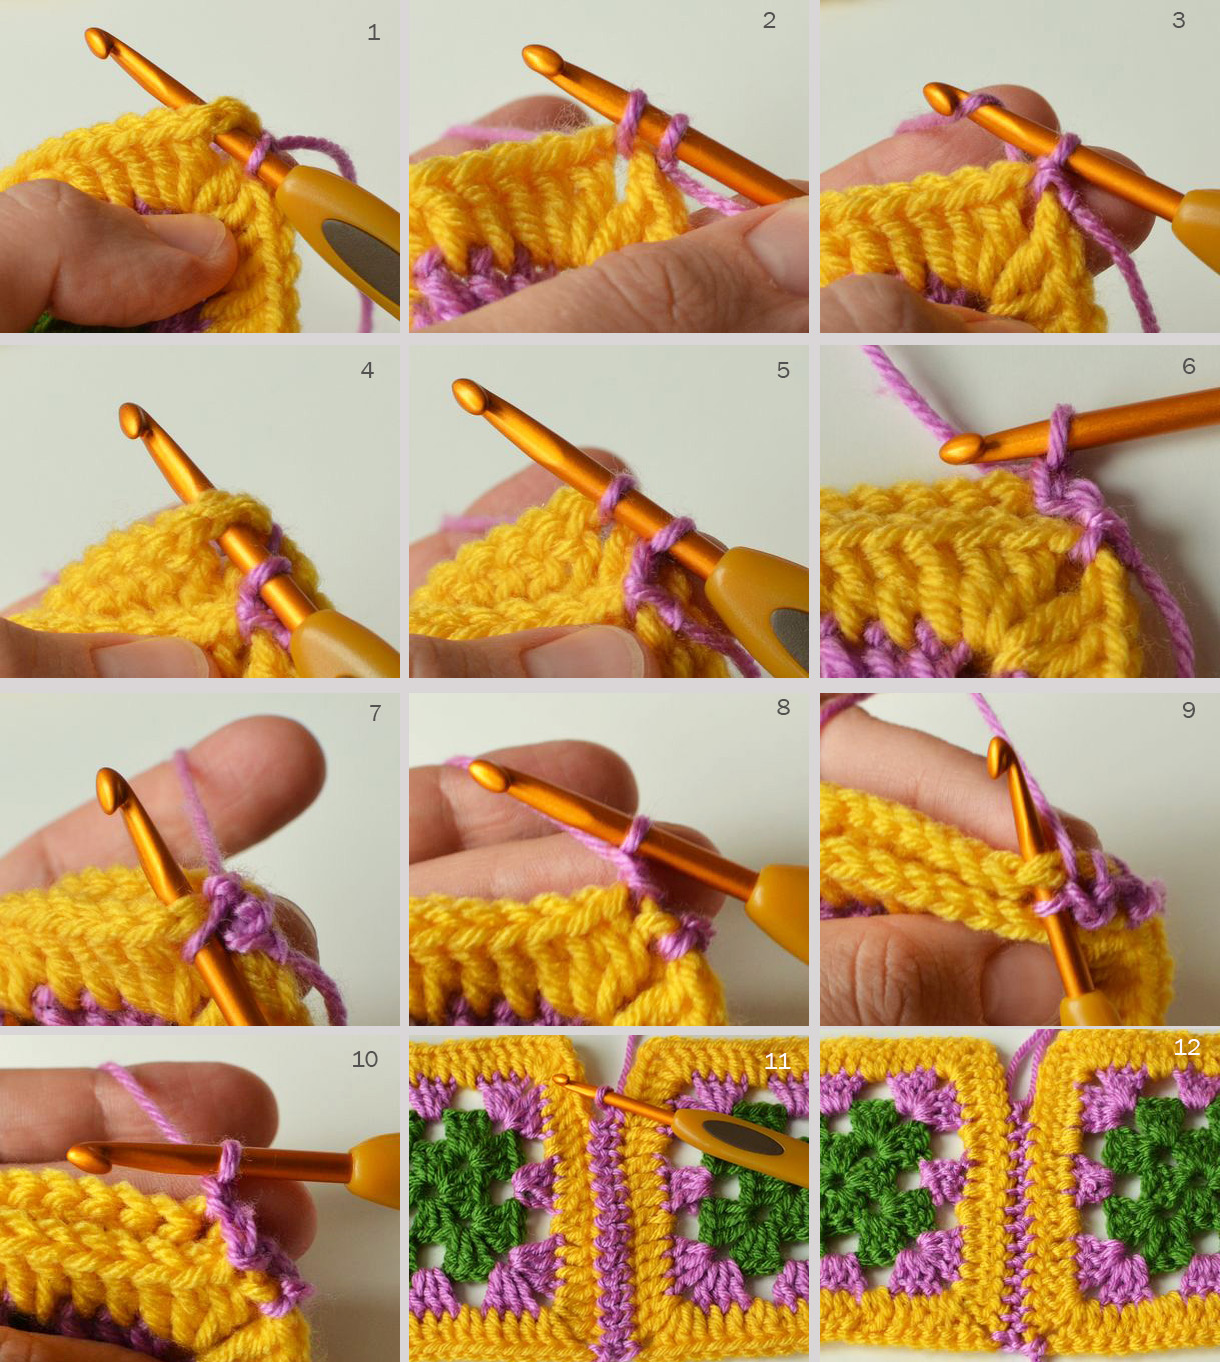 And When You Crochet Across Using This Method, You Should Not Make An  Additional Ch1, Because You Already Made One After Slip Stitch In The  Corner